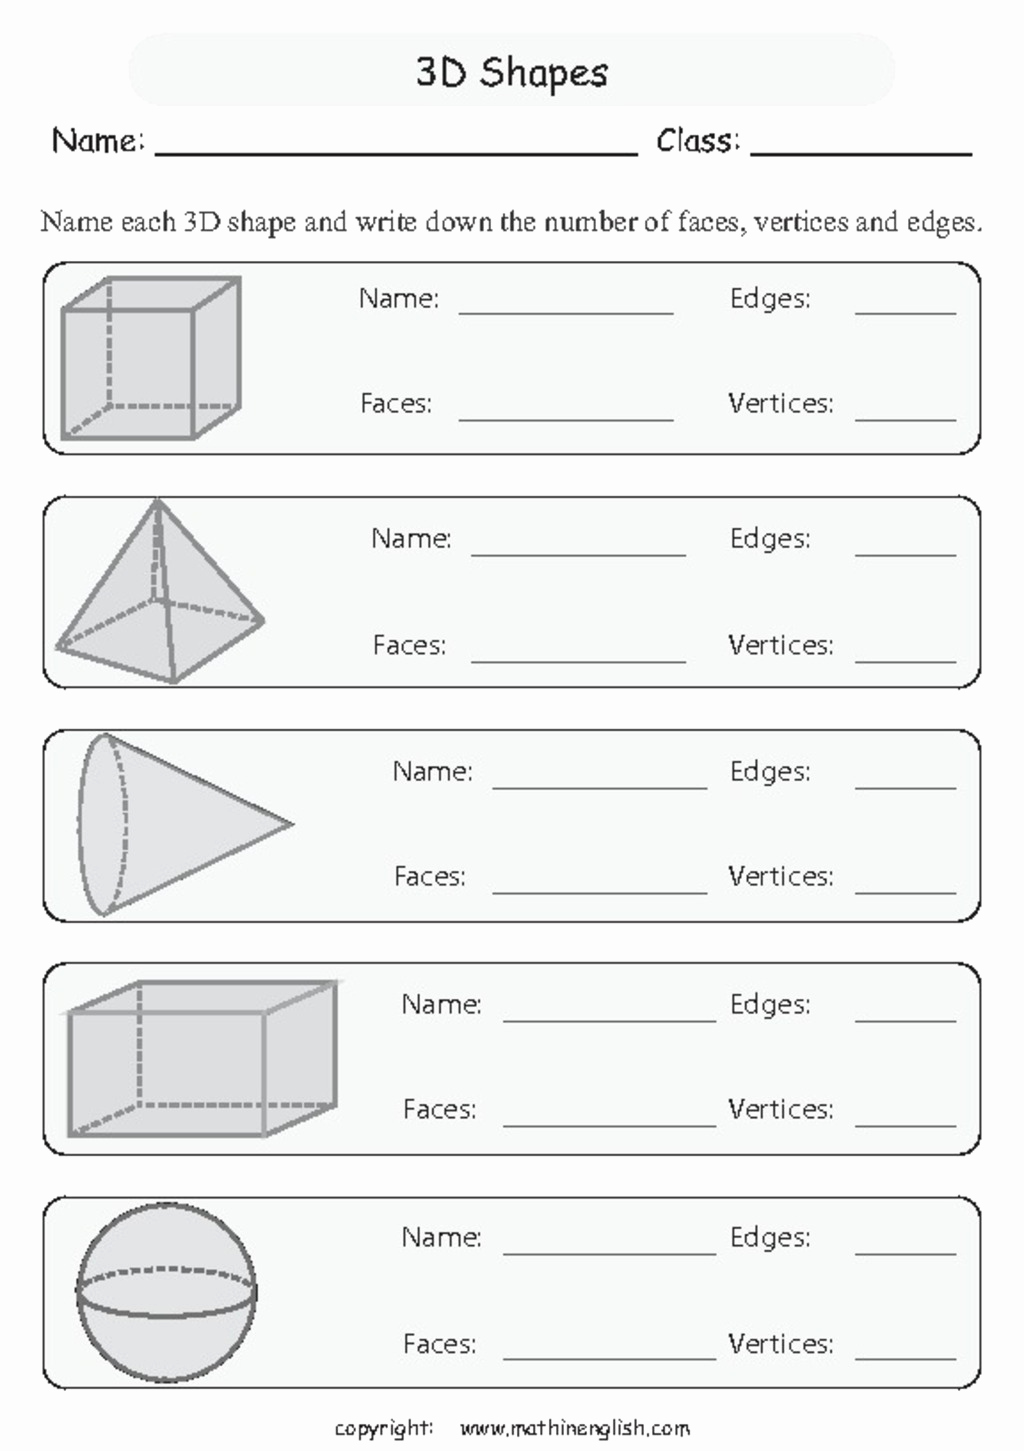 3 Dimensional Shapes Worksheet Luxury Classifying 3d Shapes Collection